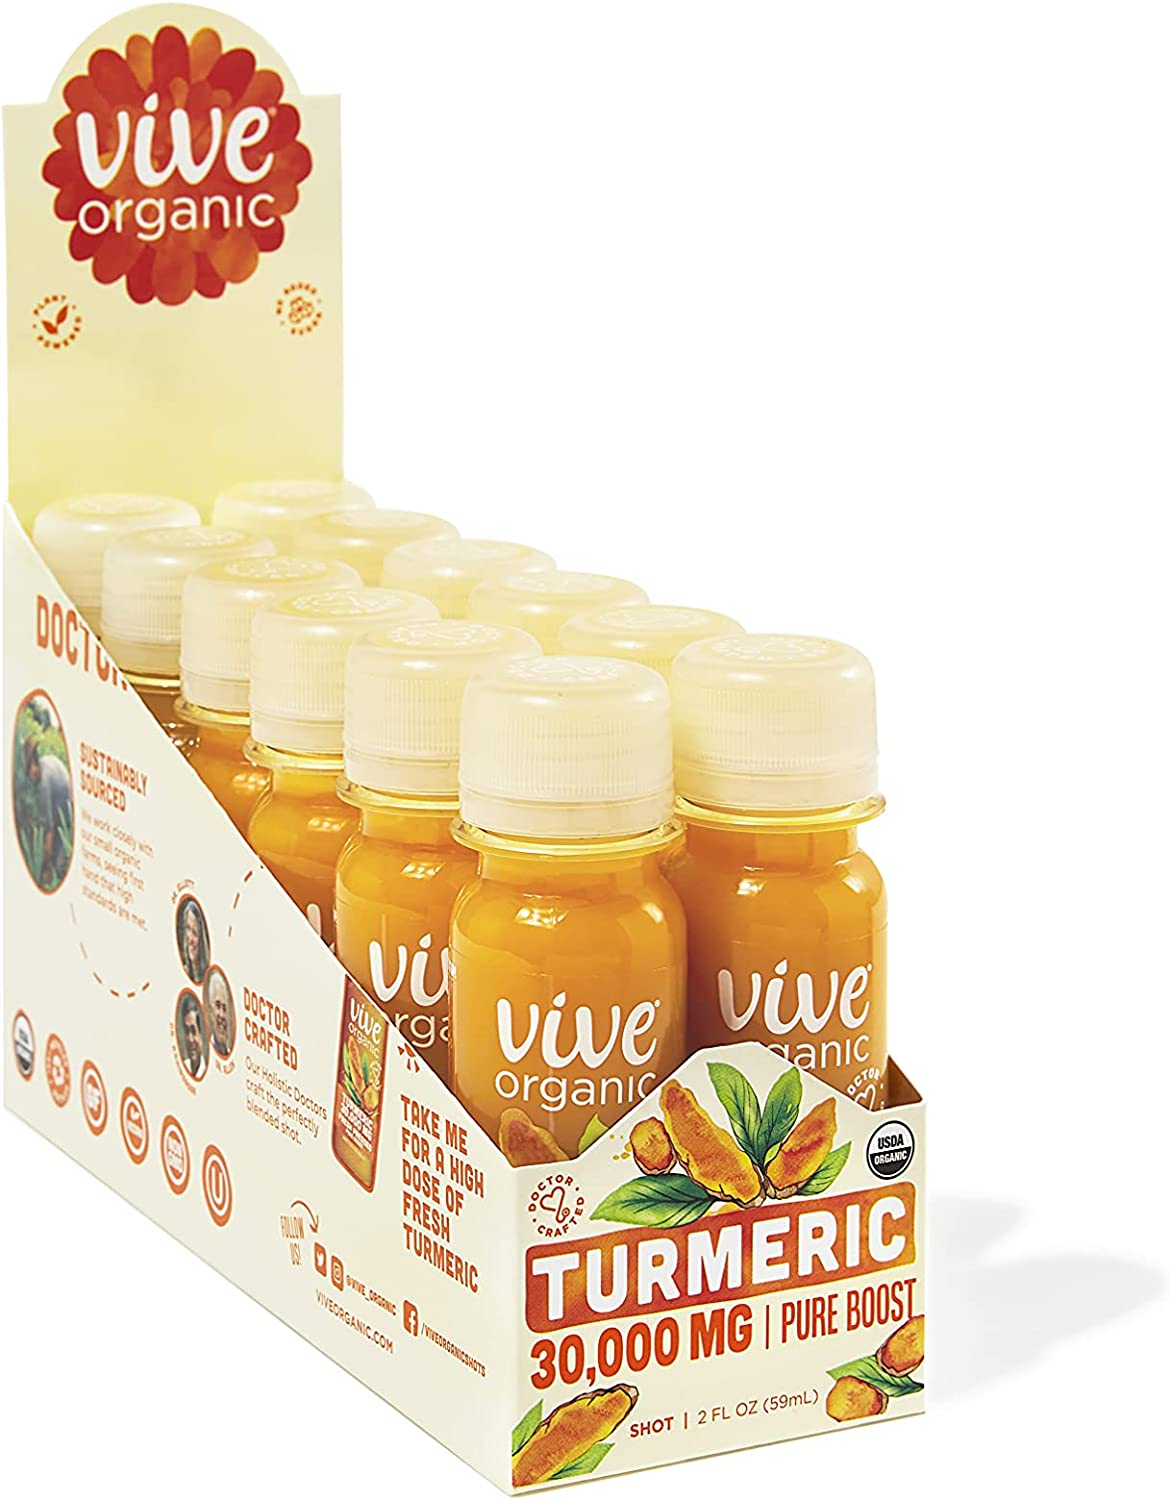 Vive Organic Pure Boost Turmeric All items free shipping Clearance SALE Limited time 2 oz Welln Count 12 Immunity